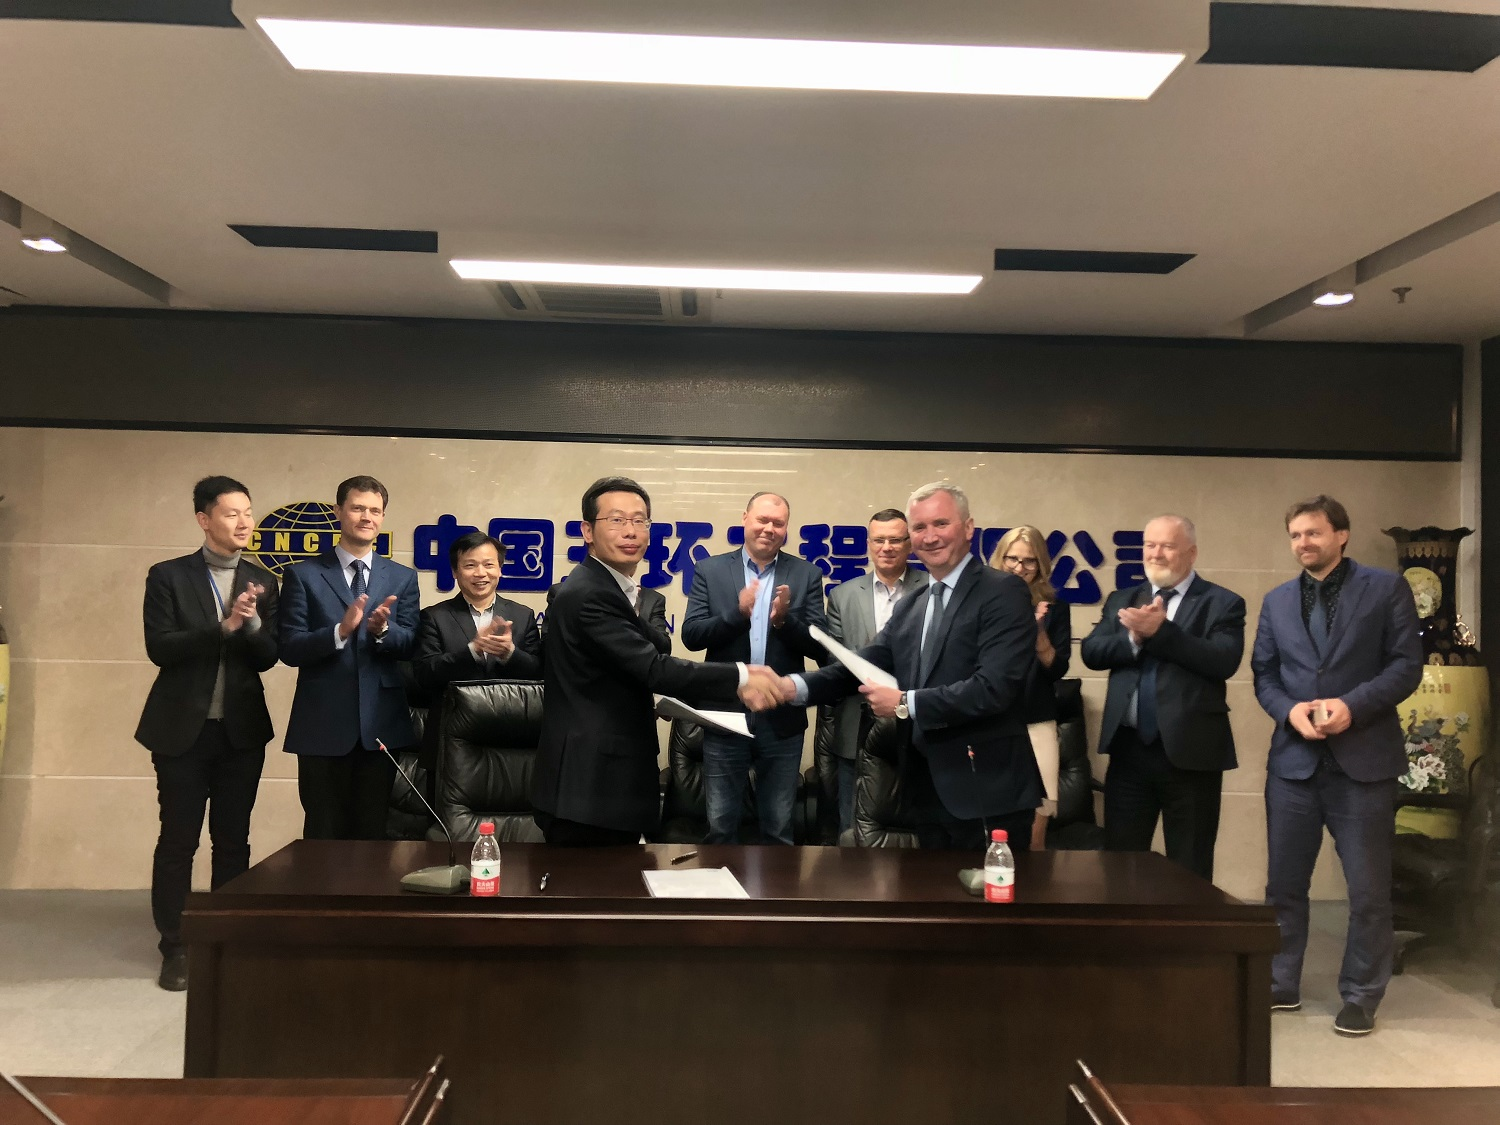 April, 11 NIIK and CHINA NATIONAL CHEMICAL ENGINEERING CO Ltd (CNCEC) signed a contract for the execution of the engineering works for ammonia-urea complex for Shchekinoazot